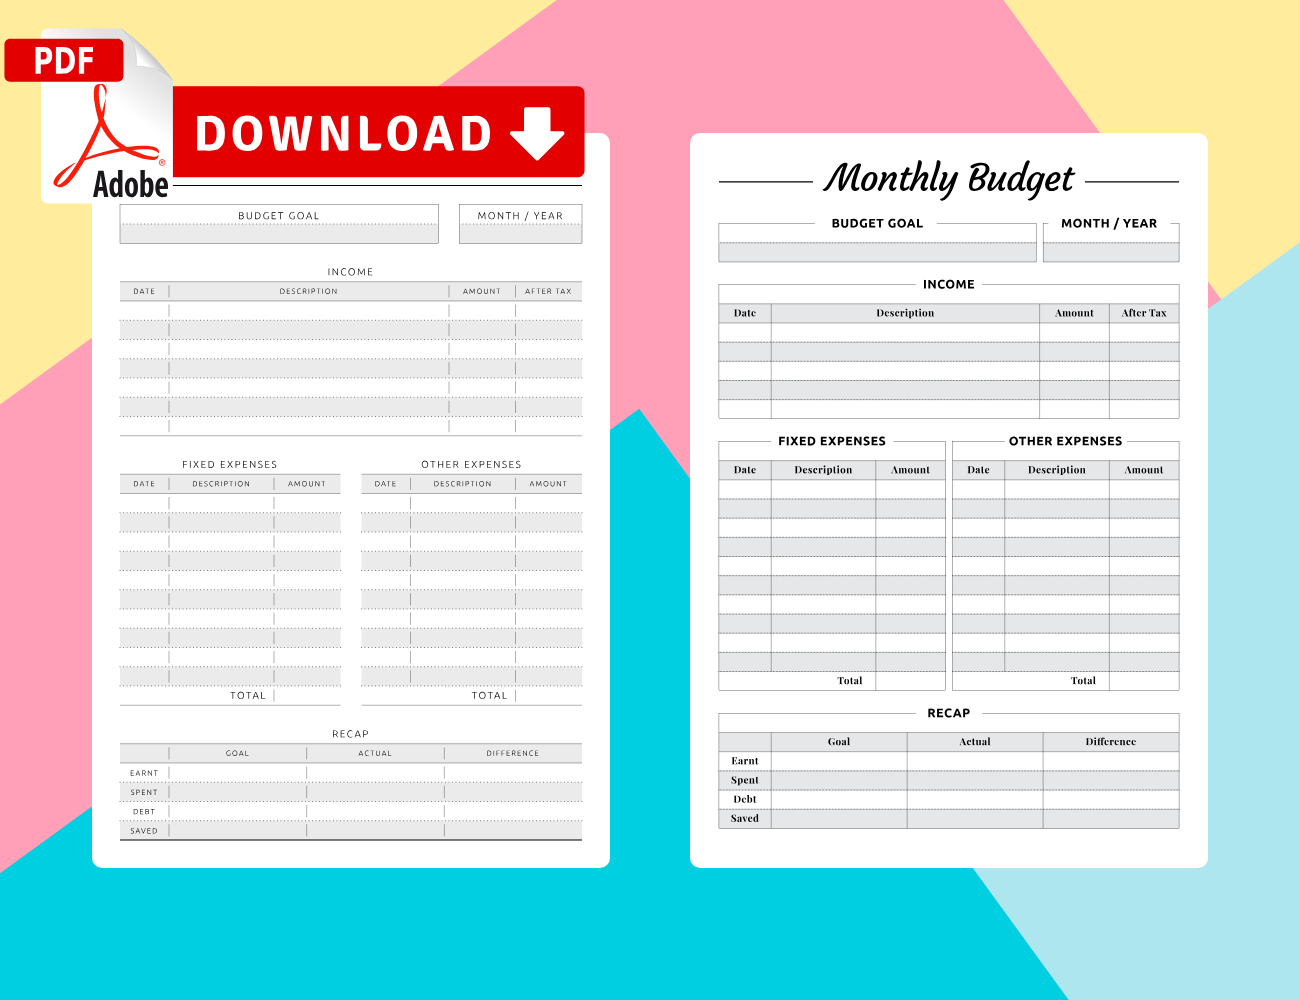 Monthly Budget Planner Templates - Download Pdf intended for Budget Planner Pdf Download Free Photo